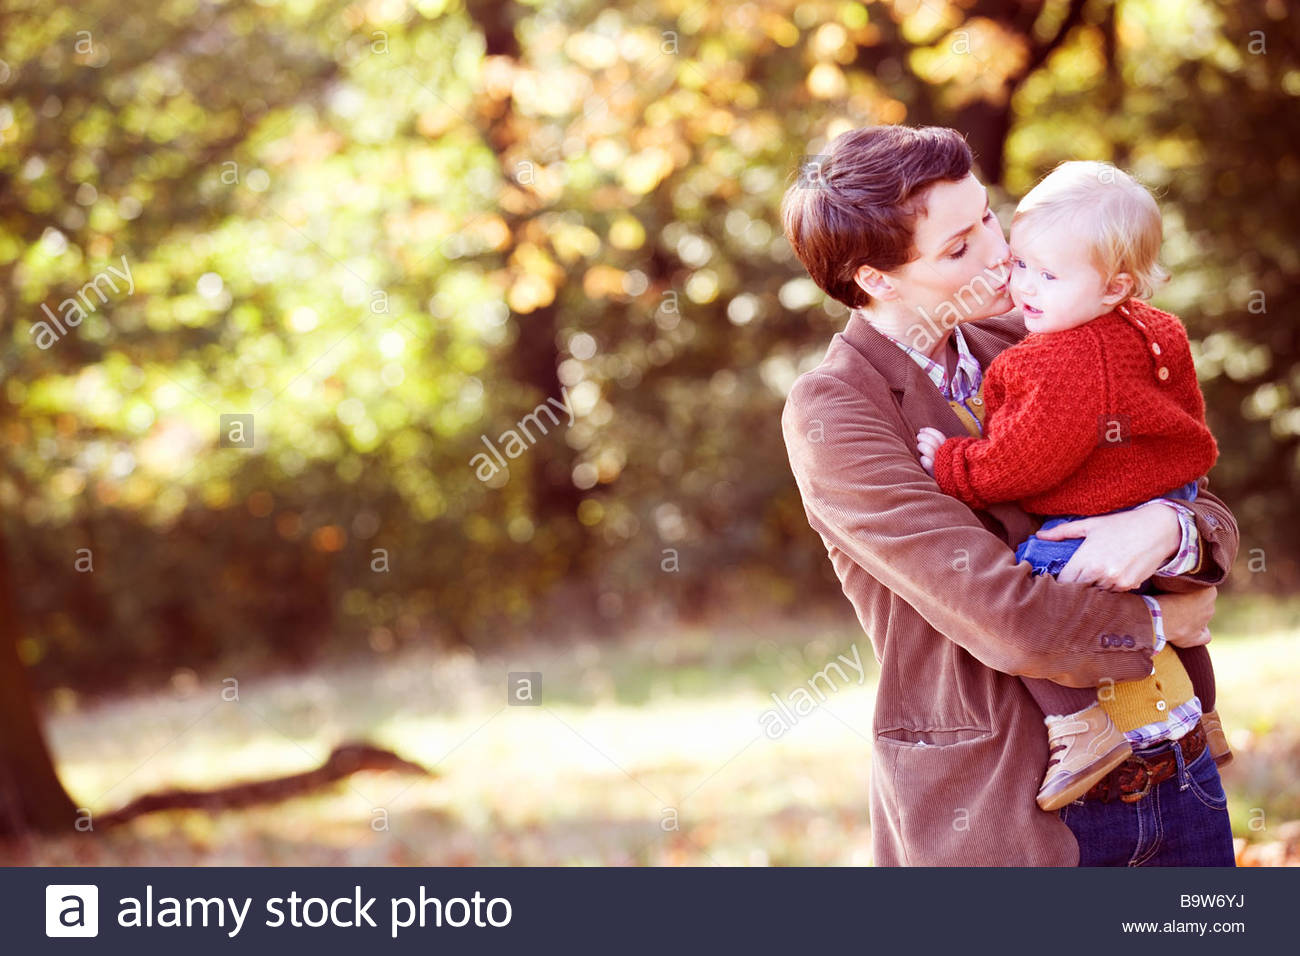 A young mother kissing her baby tenderly on the cheek - Stock Image